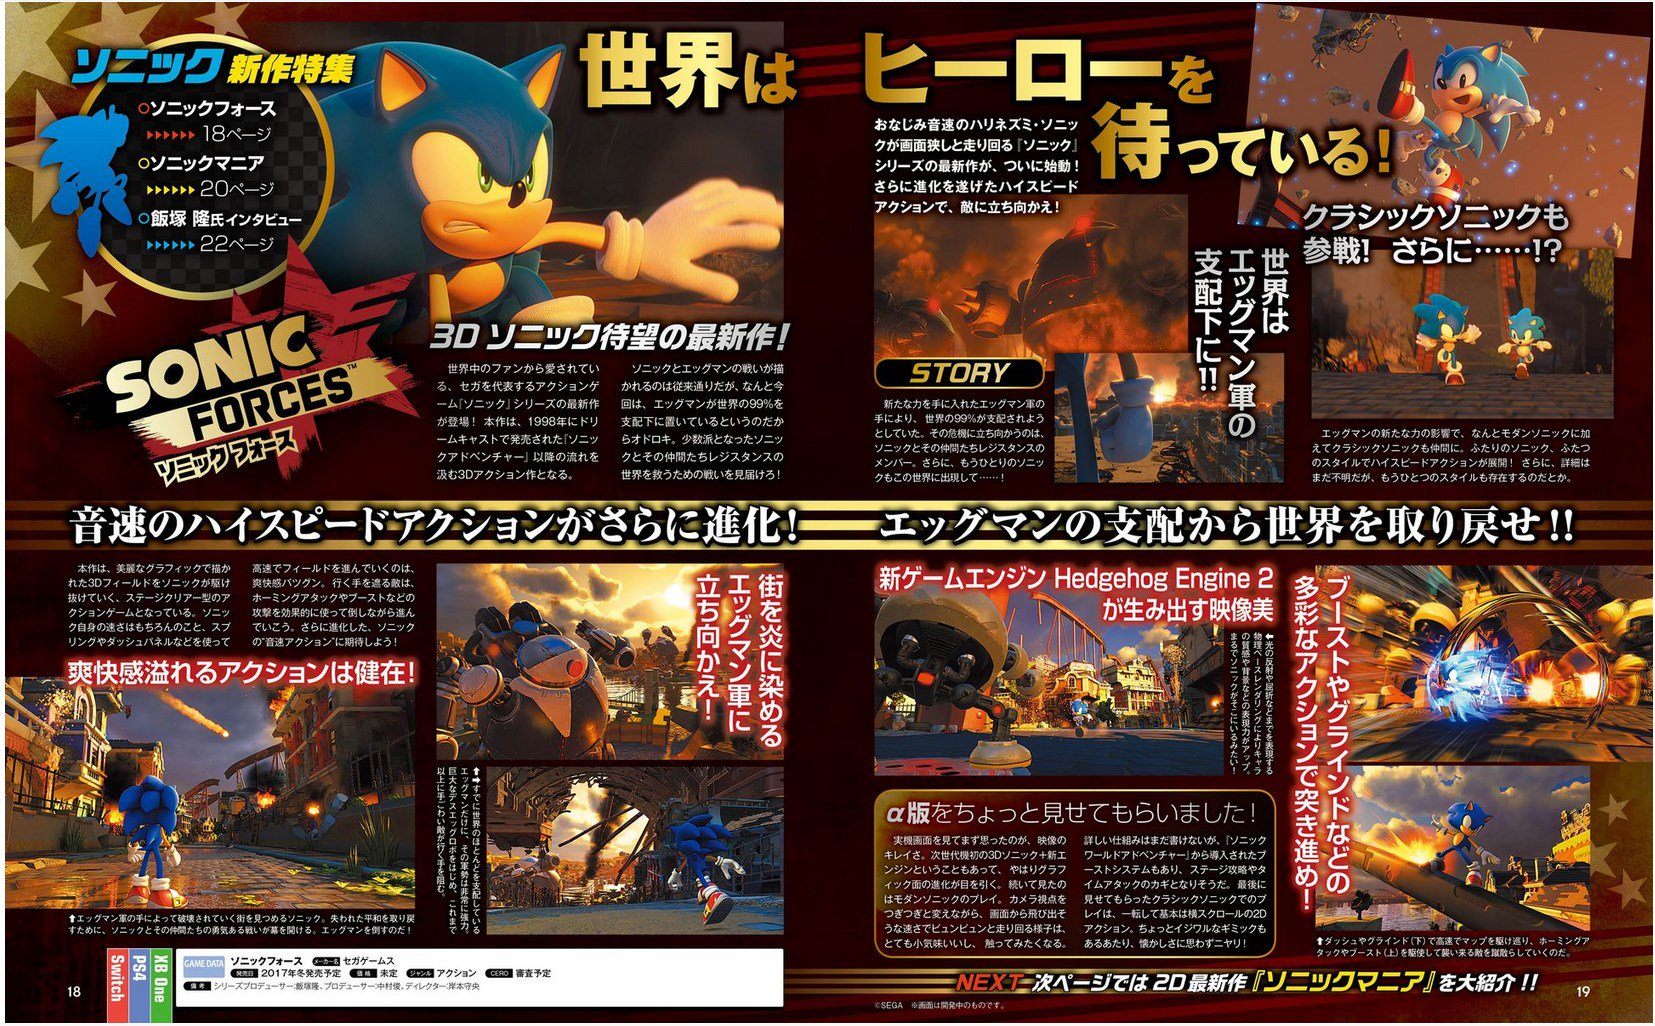 Sonic Forces in Weekly Famitsu Magazine